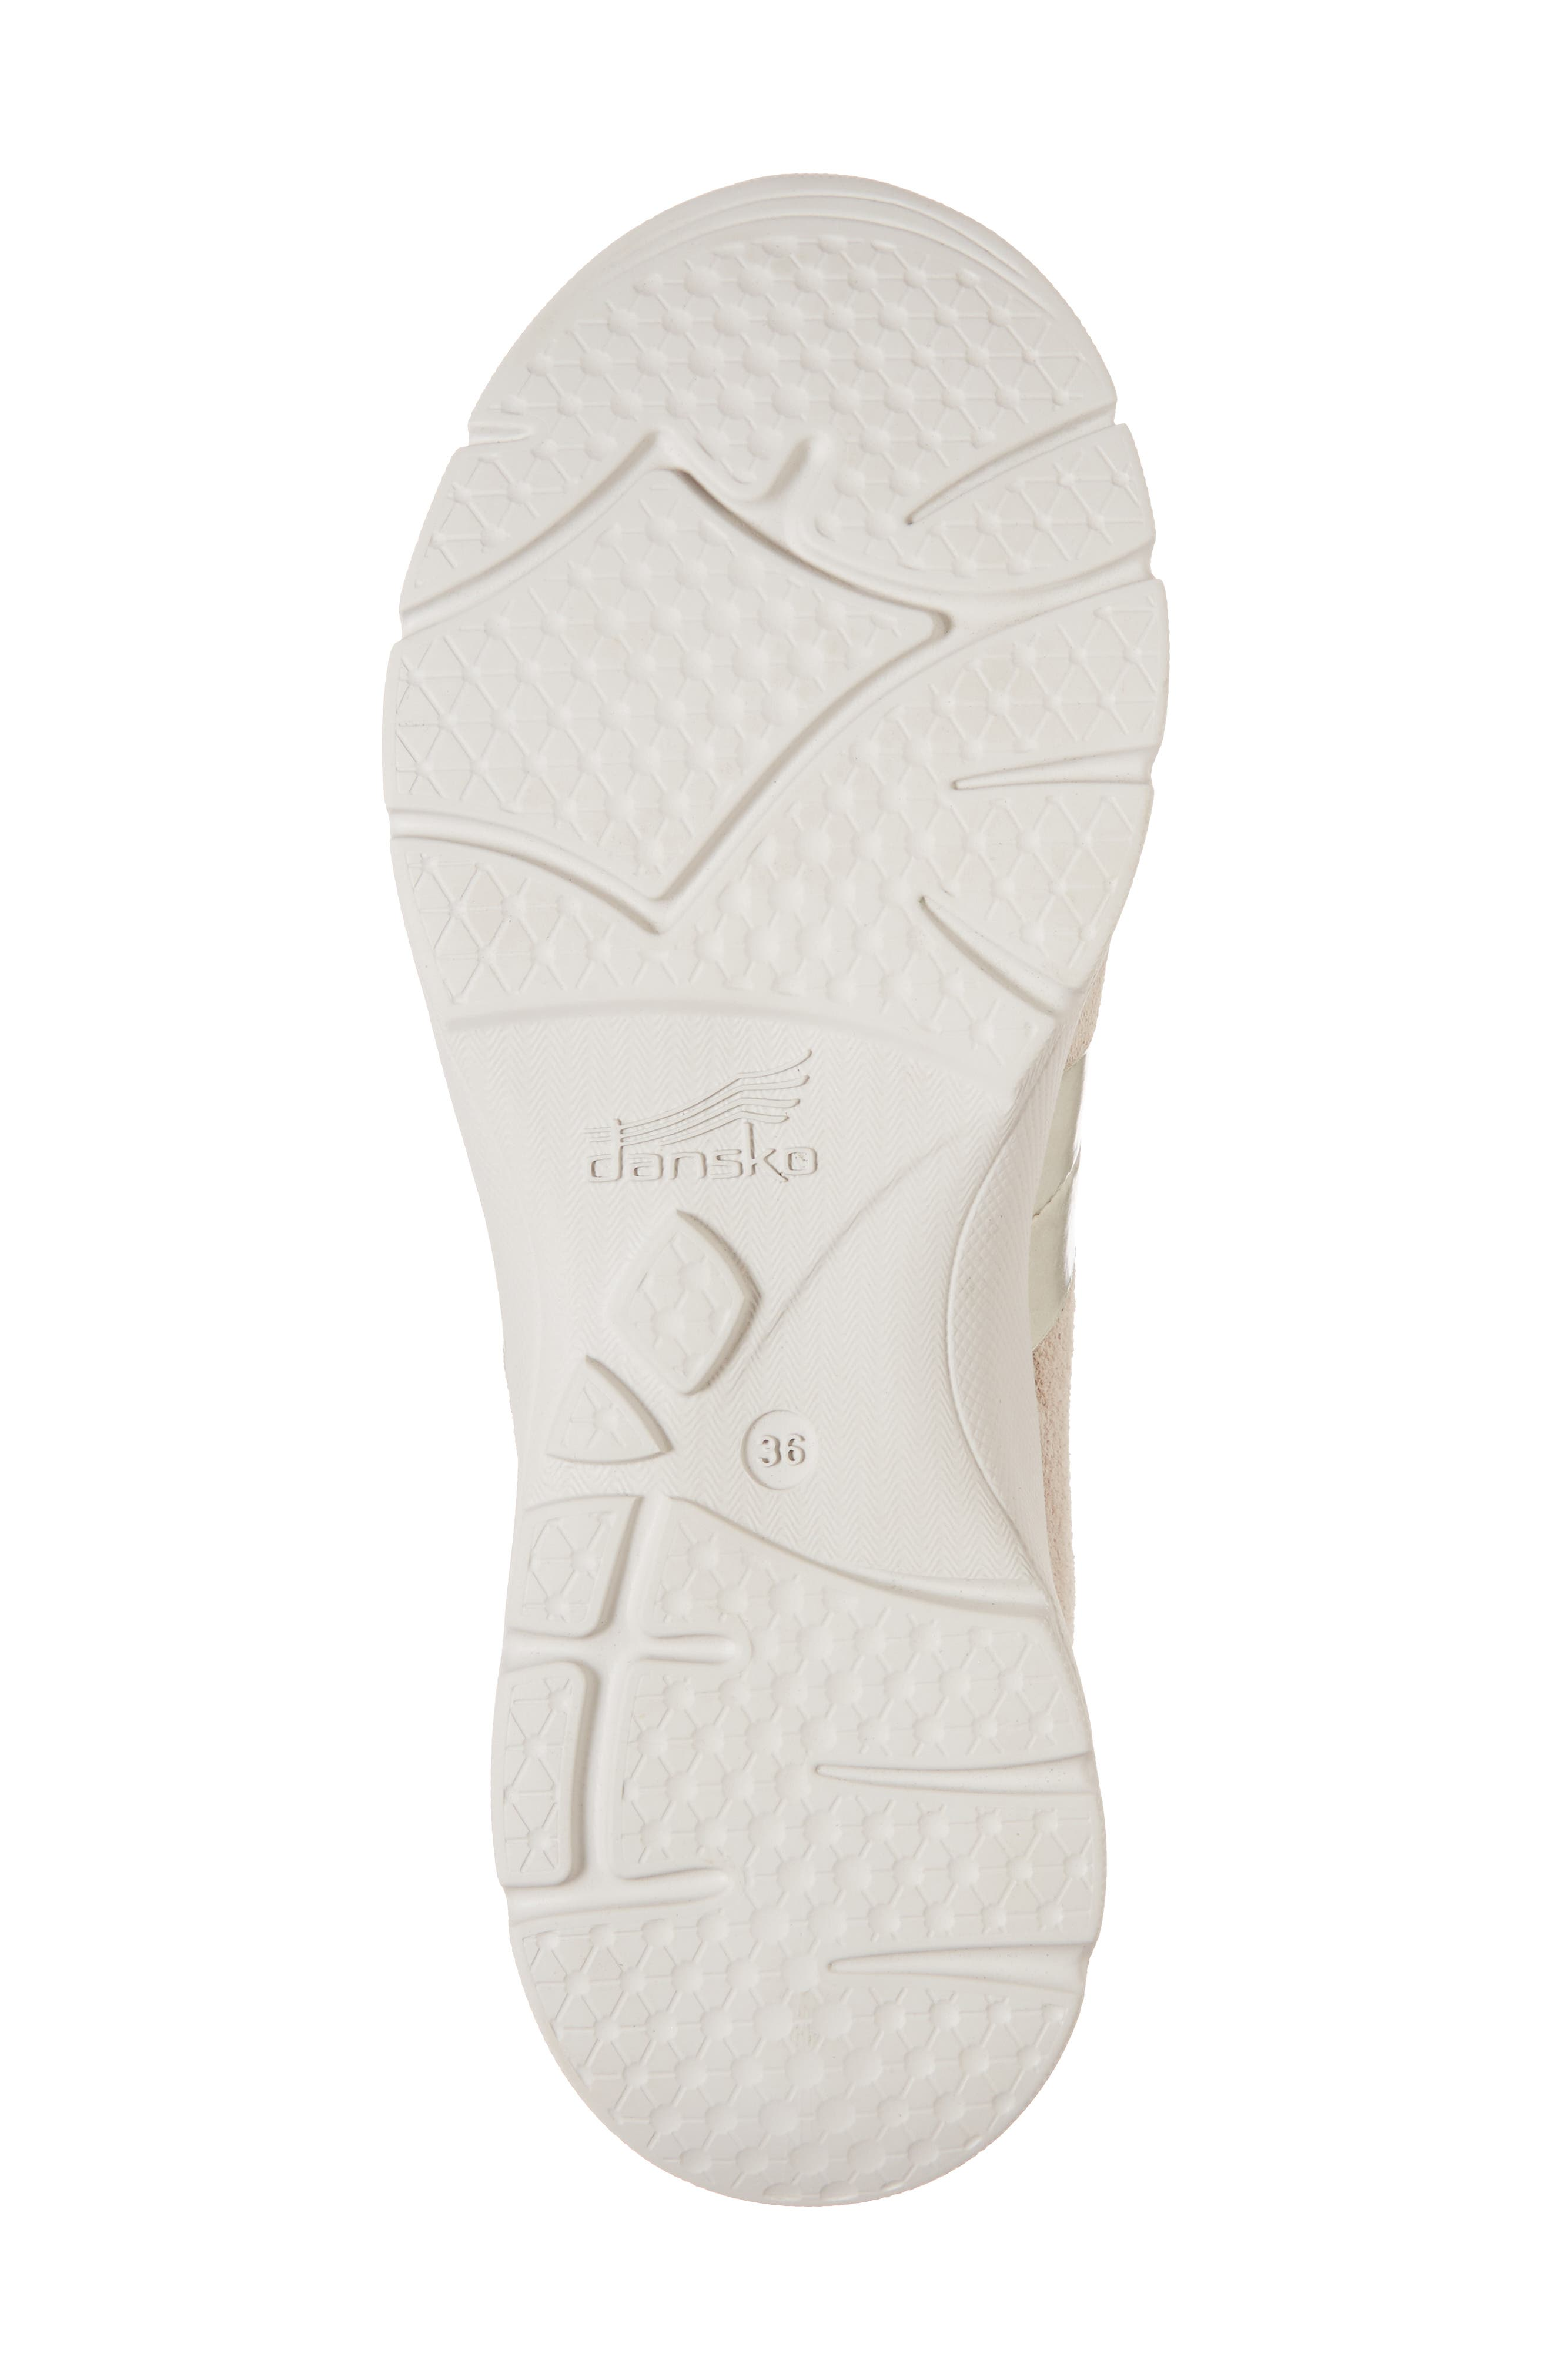 Andi Sneaker,                             Alternate thumbnail 6, color,                             Ivory Leather